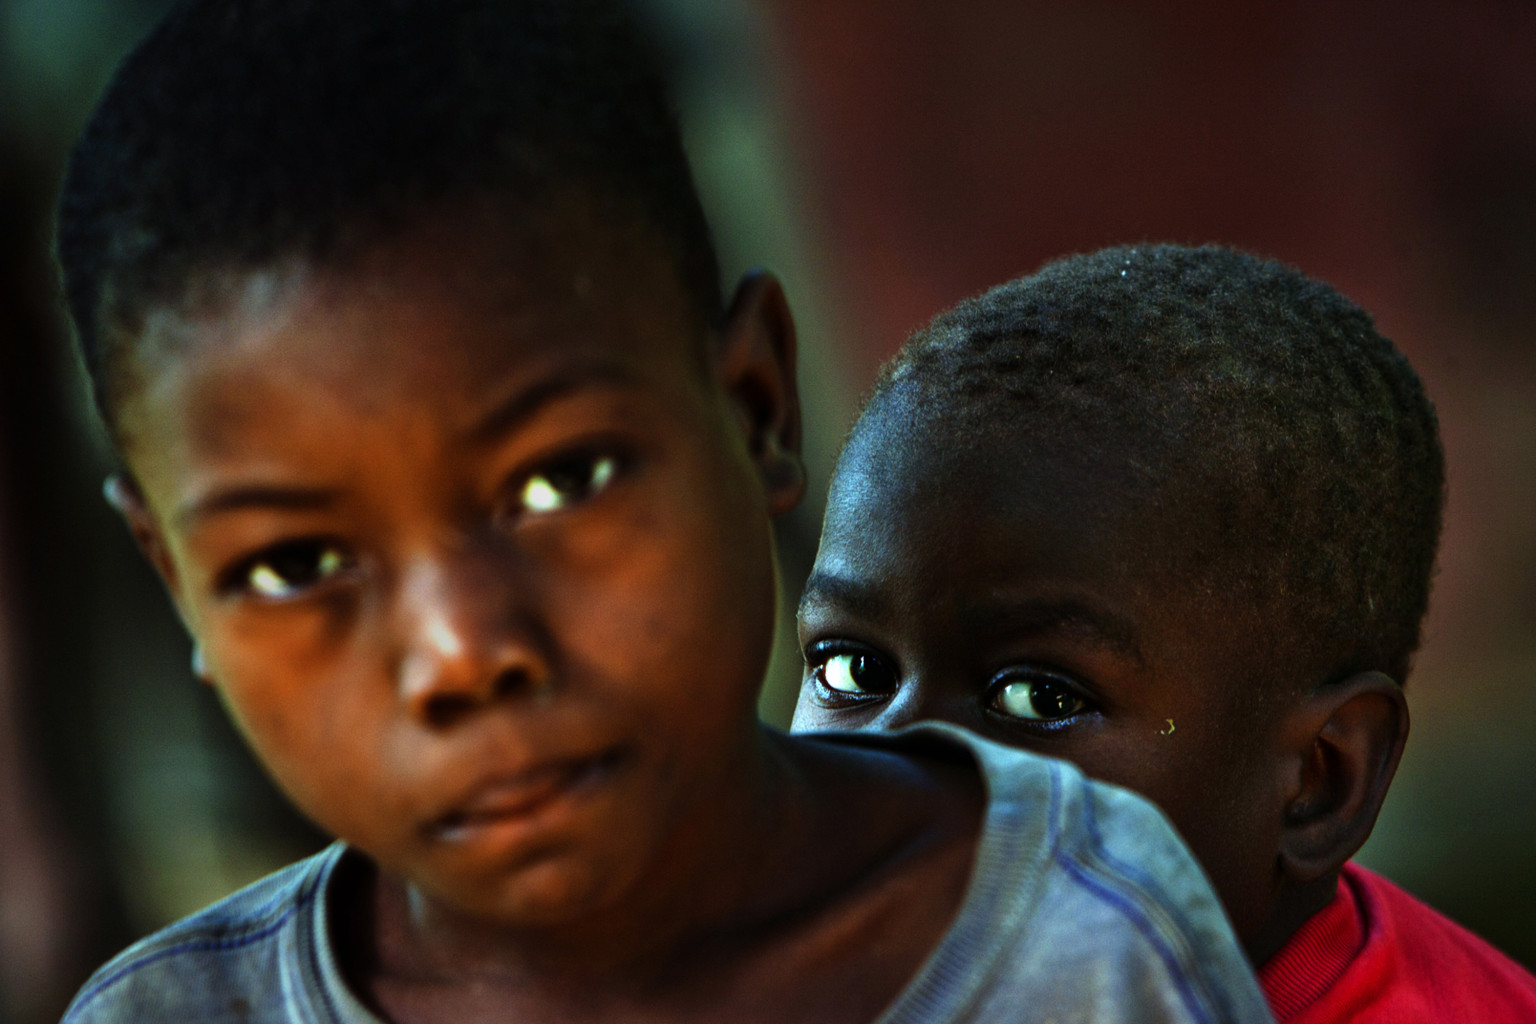 Deux enfants (Bois Carre, Haiti). Photo : Getty Images